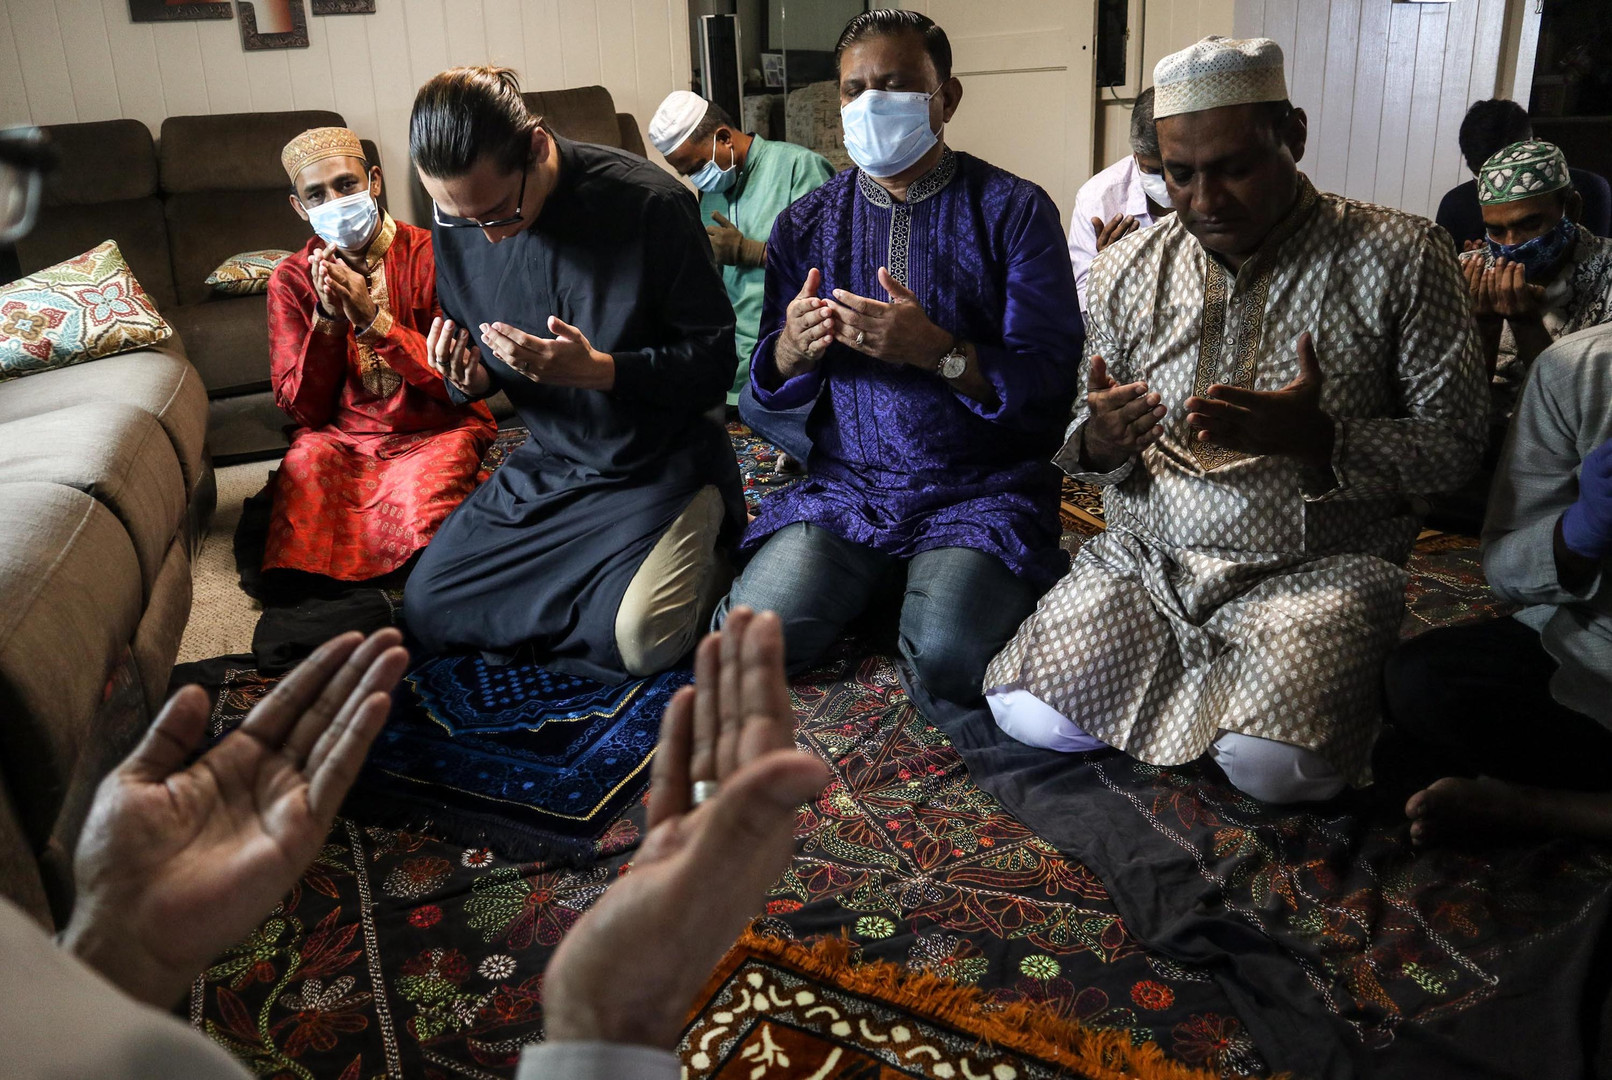 Muslims pray during an Eid-al-Fitr home congregational prayer in Honolulu, HI on May 23, 2020. Religious institutions are under lockdown to worshippers and visitors as a measure to regulate the spread of COVID-19. On Thursday, the city has allowed in-person spiritual services to reopen on O'ahu from June 5, 2020.